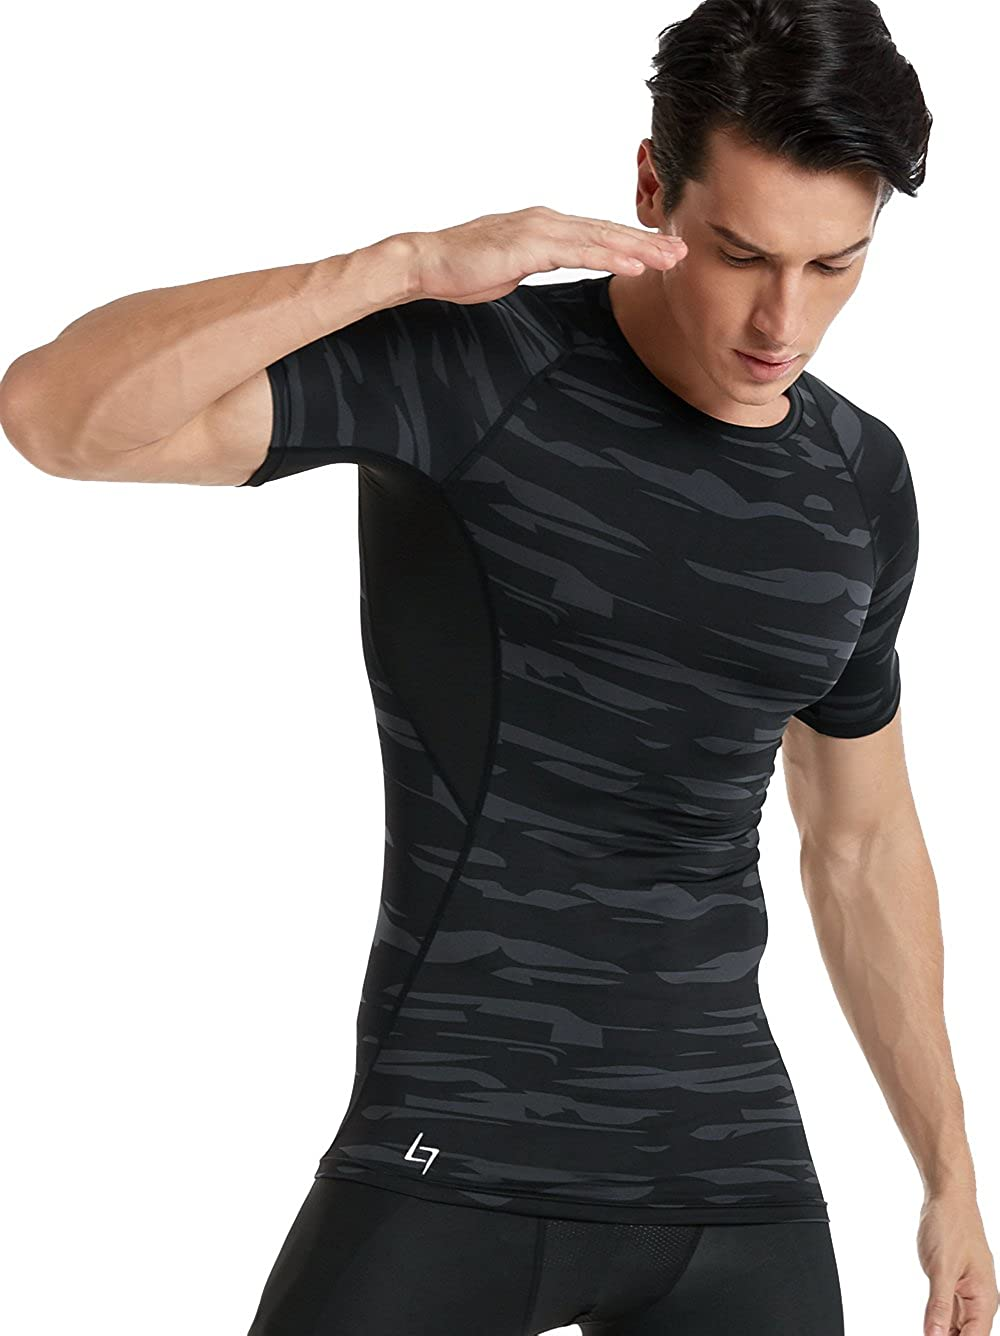 FITTIN Mens Athletic Compression Under Base Layer Sport Shirt for Sport Running Basketball Football